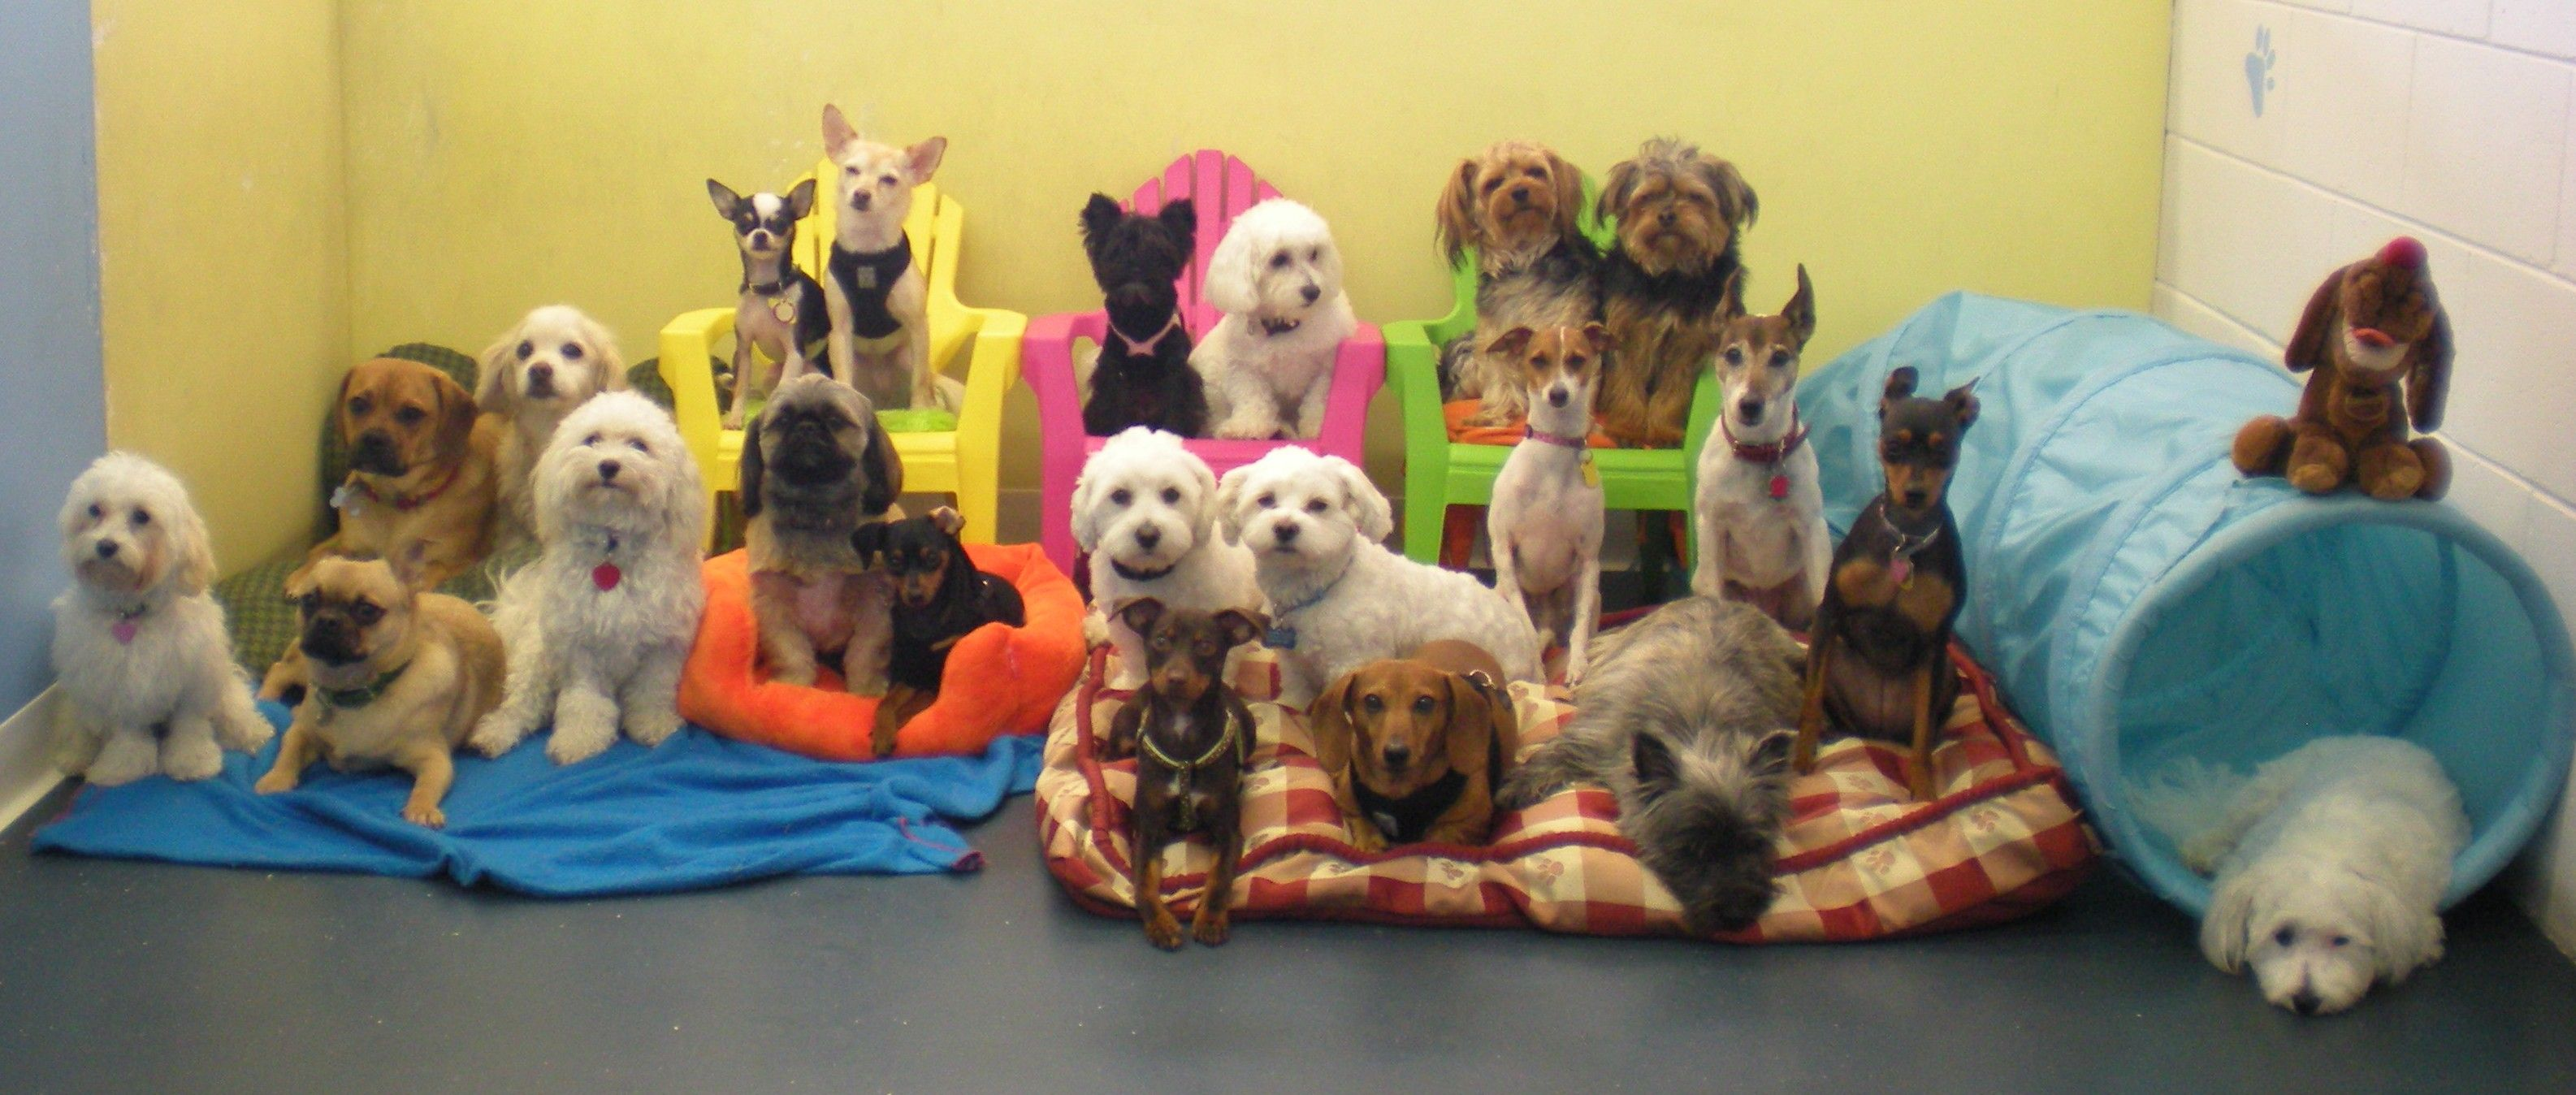 Small Paws Doggie Daycare Home Dog Daycare Your Dog Animal Shelter